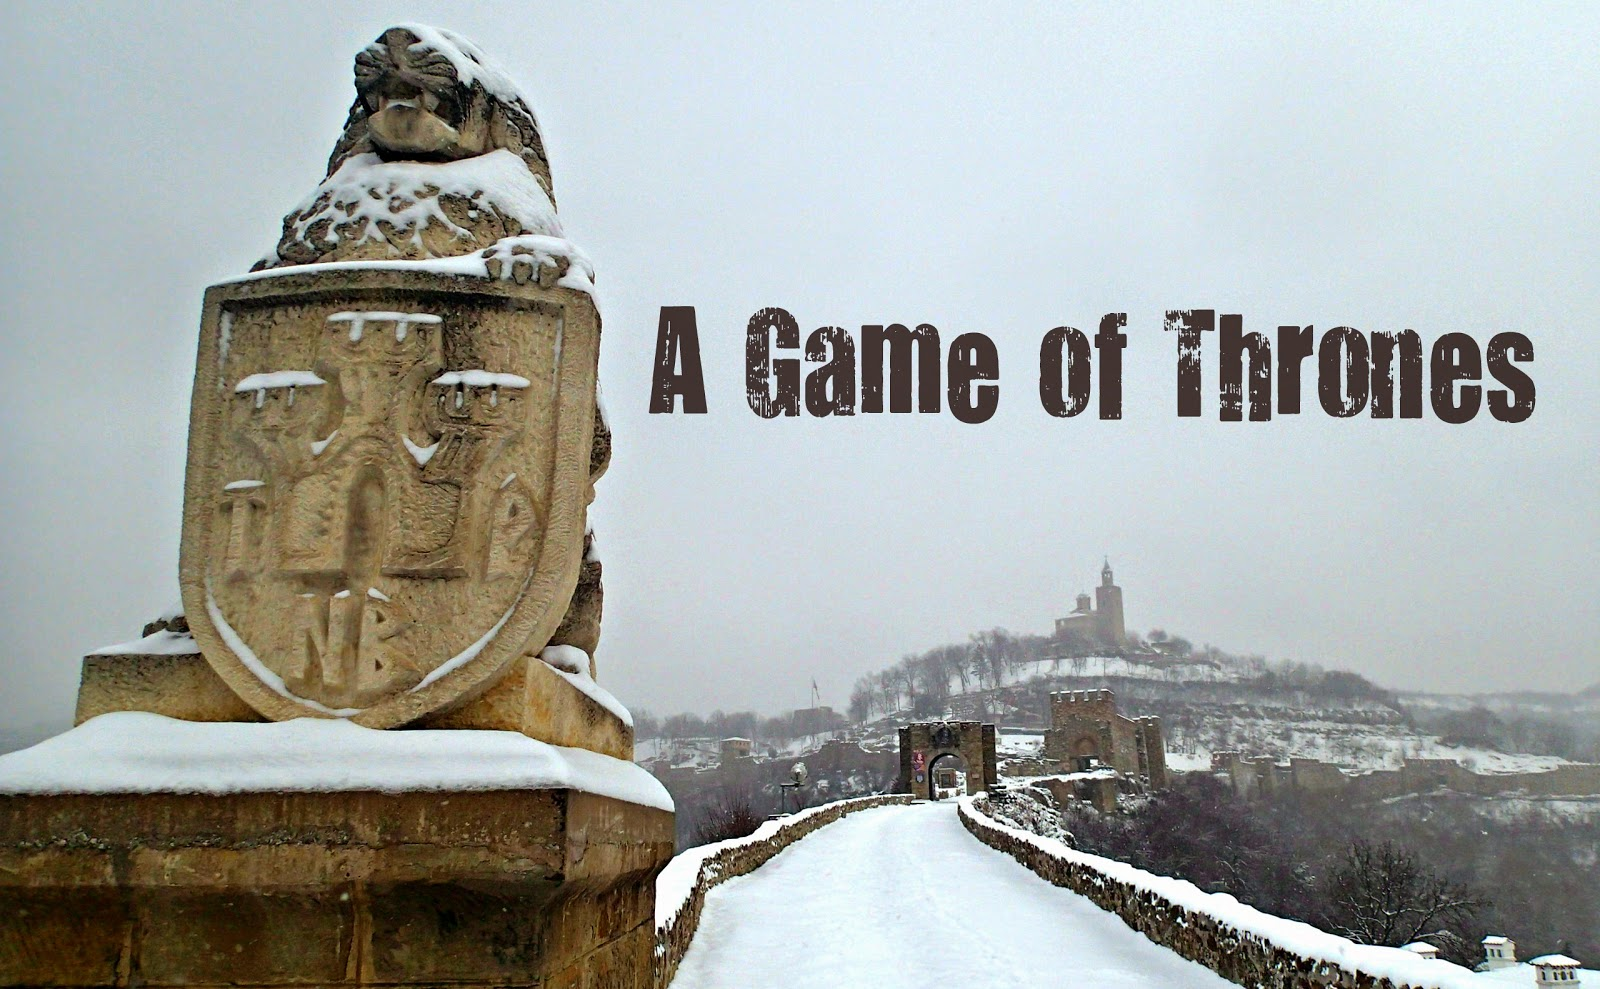 Veliko Tarnovo and a Game of Thrones in Bulgaria